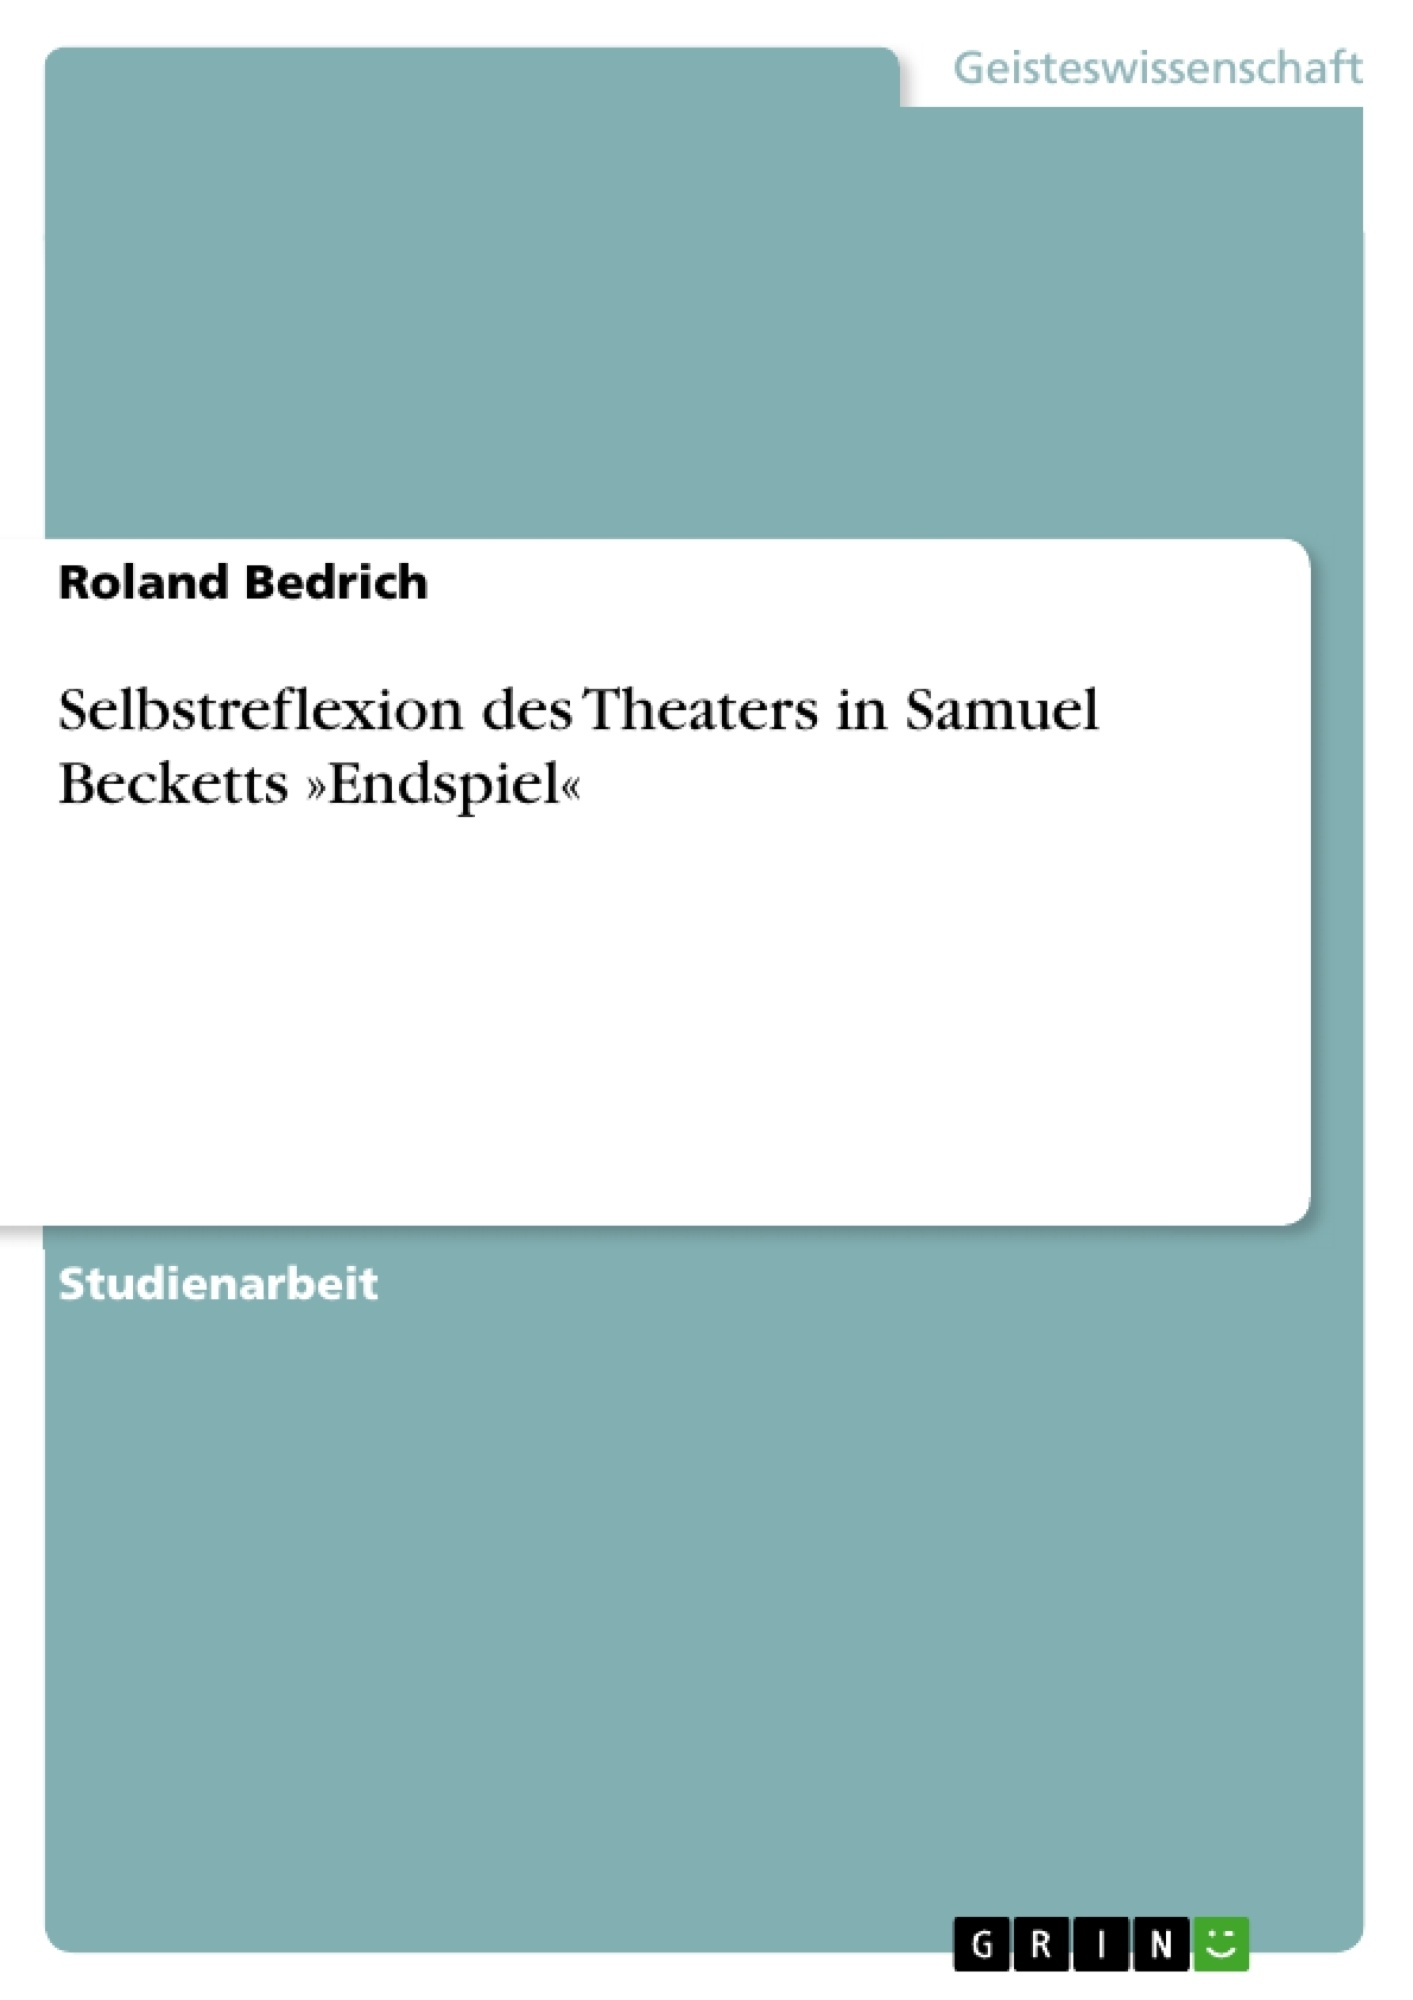 essay of samuel becketts waiting for godot english literature essay An essay analysing waiting for godot by samuel beckett the companionship that the two protagonist characters portray underneath the humour and it is tempting to view samuel beckett's 'waiting for godot' as a play of .